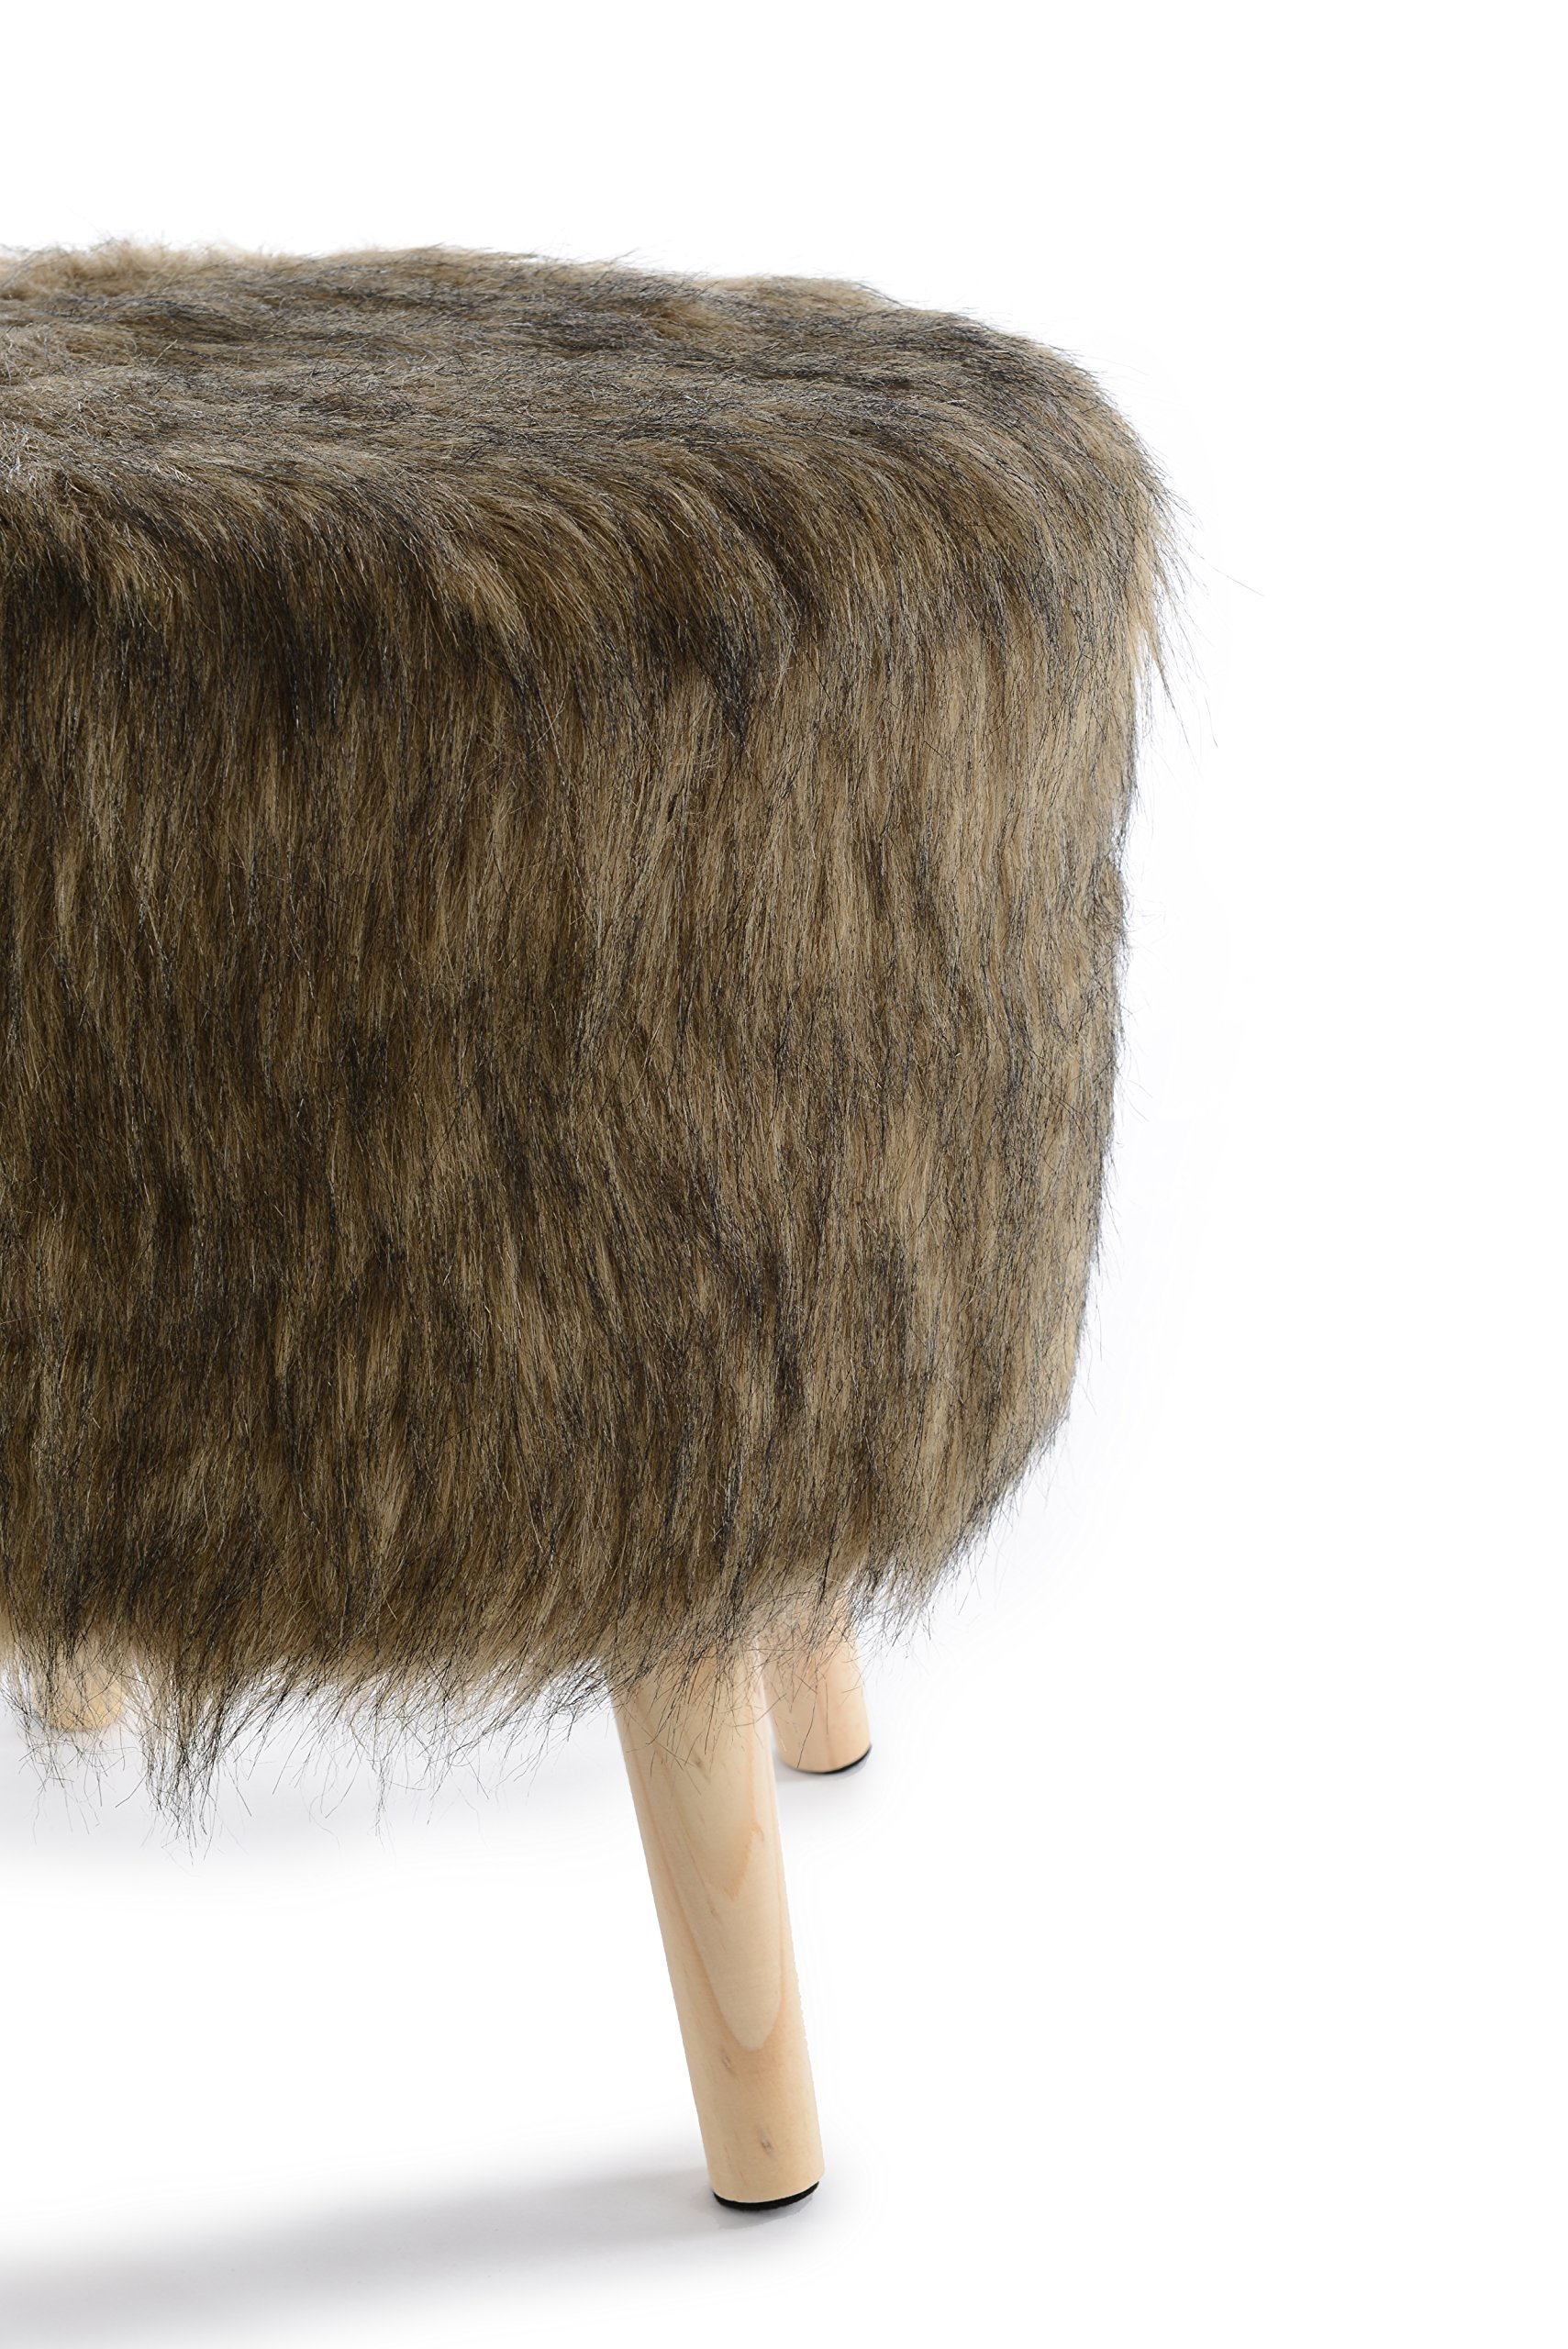 Cheer Collection 13'' Round Ottoman | Super Soft Decorative Brown Mink Faux Fur Foot Stool with Wood Legs by Cheer Collection (Image #2)